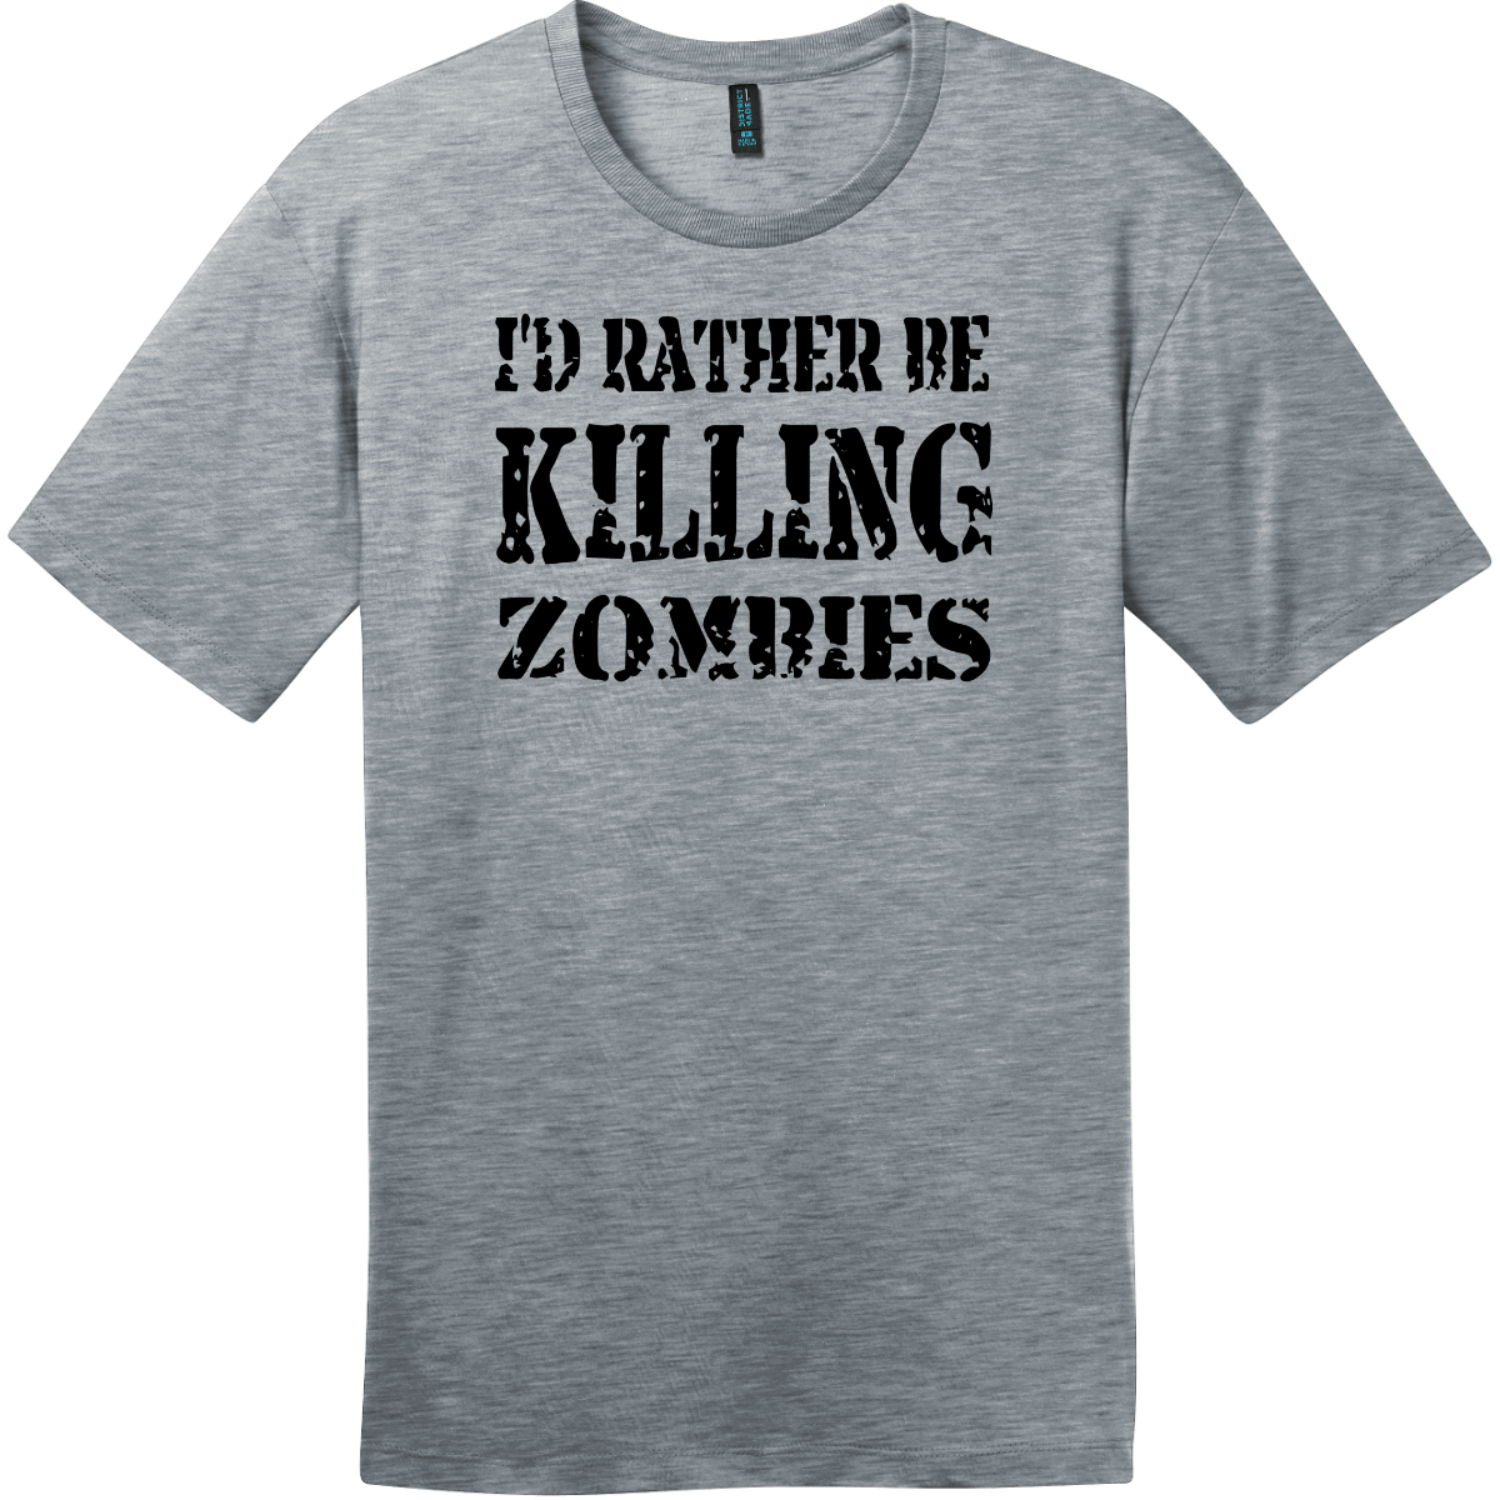 I'd Rather Be Killing Zombies T-Shirt Heathered Steel District Perfect Weight Tee DT104